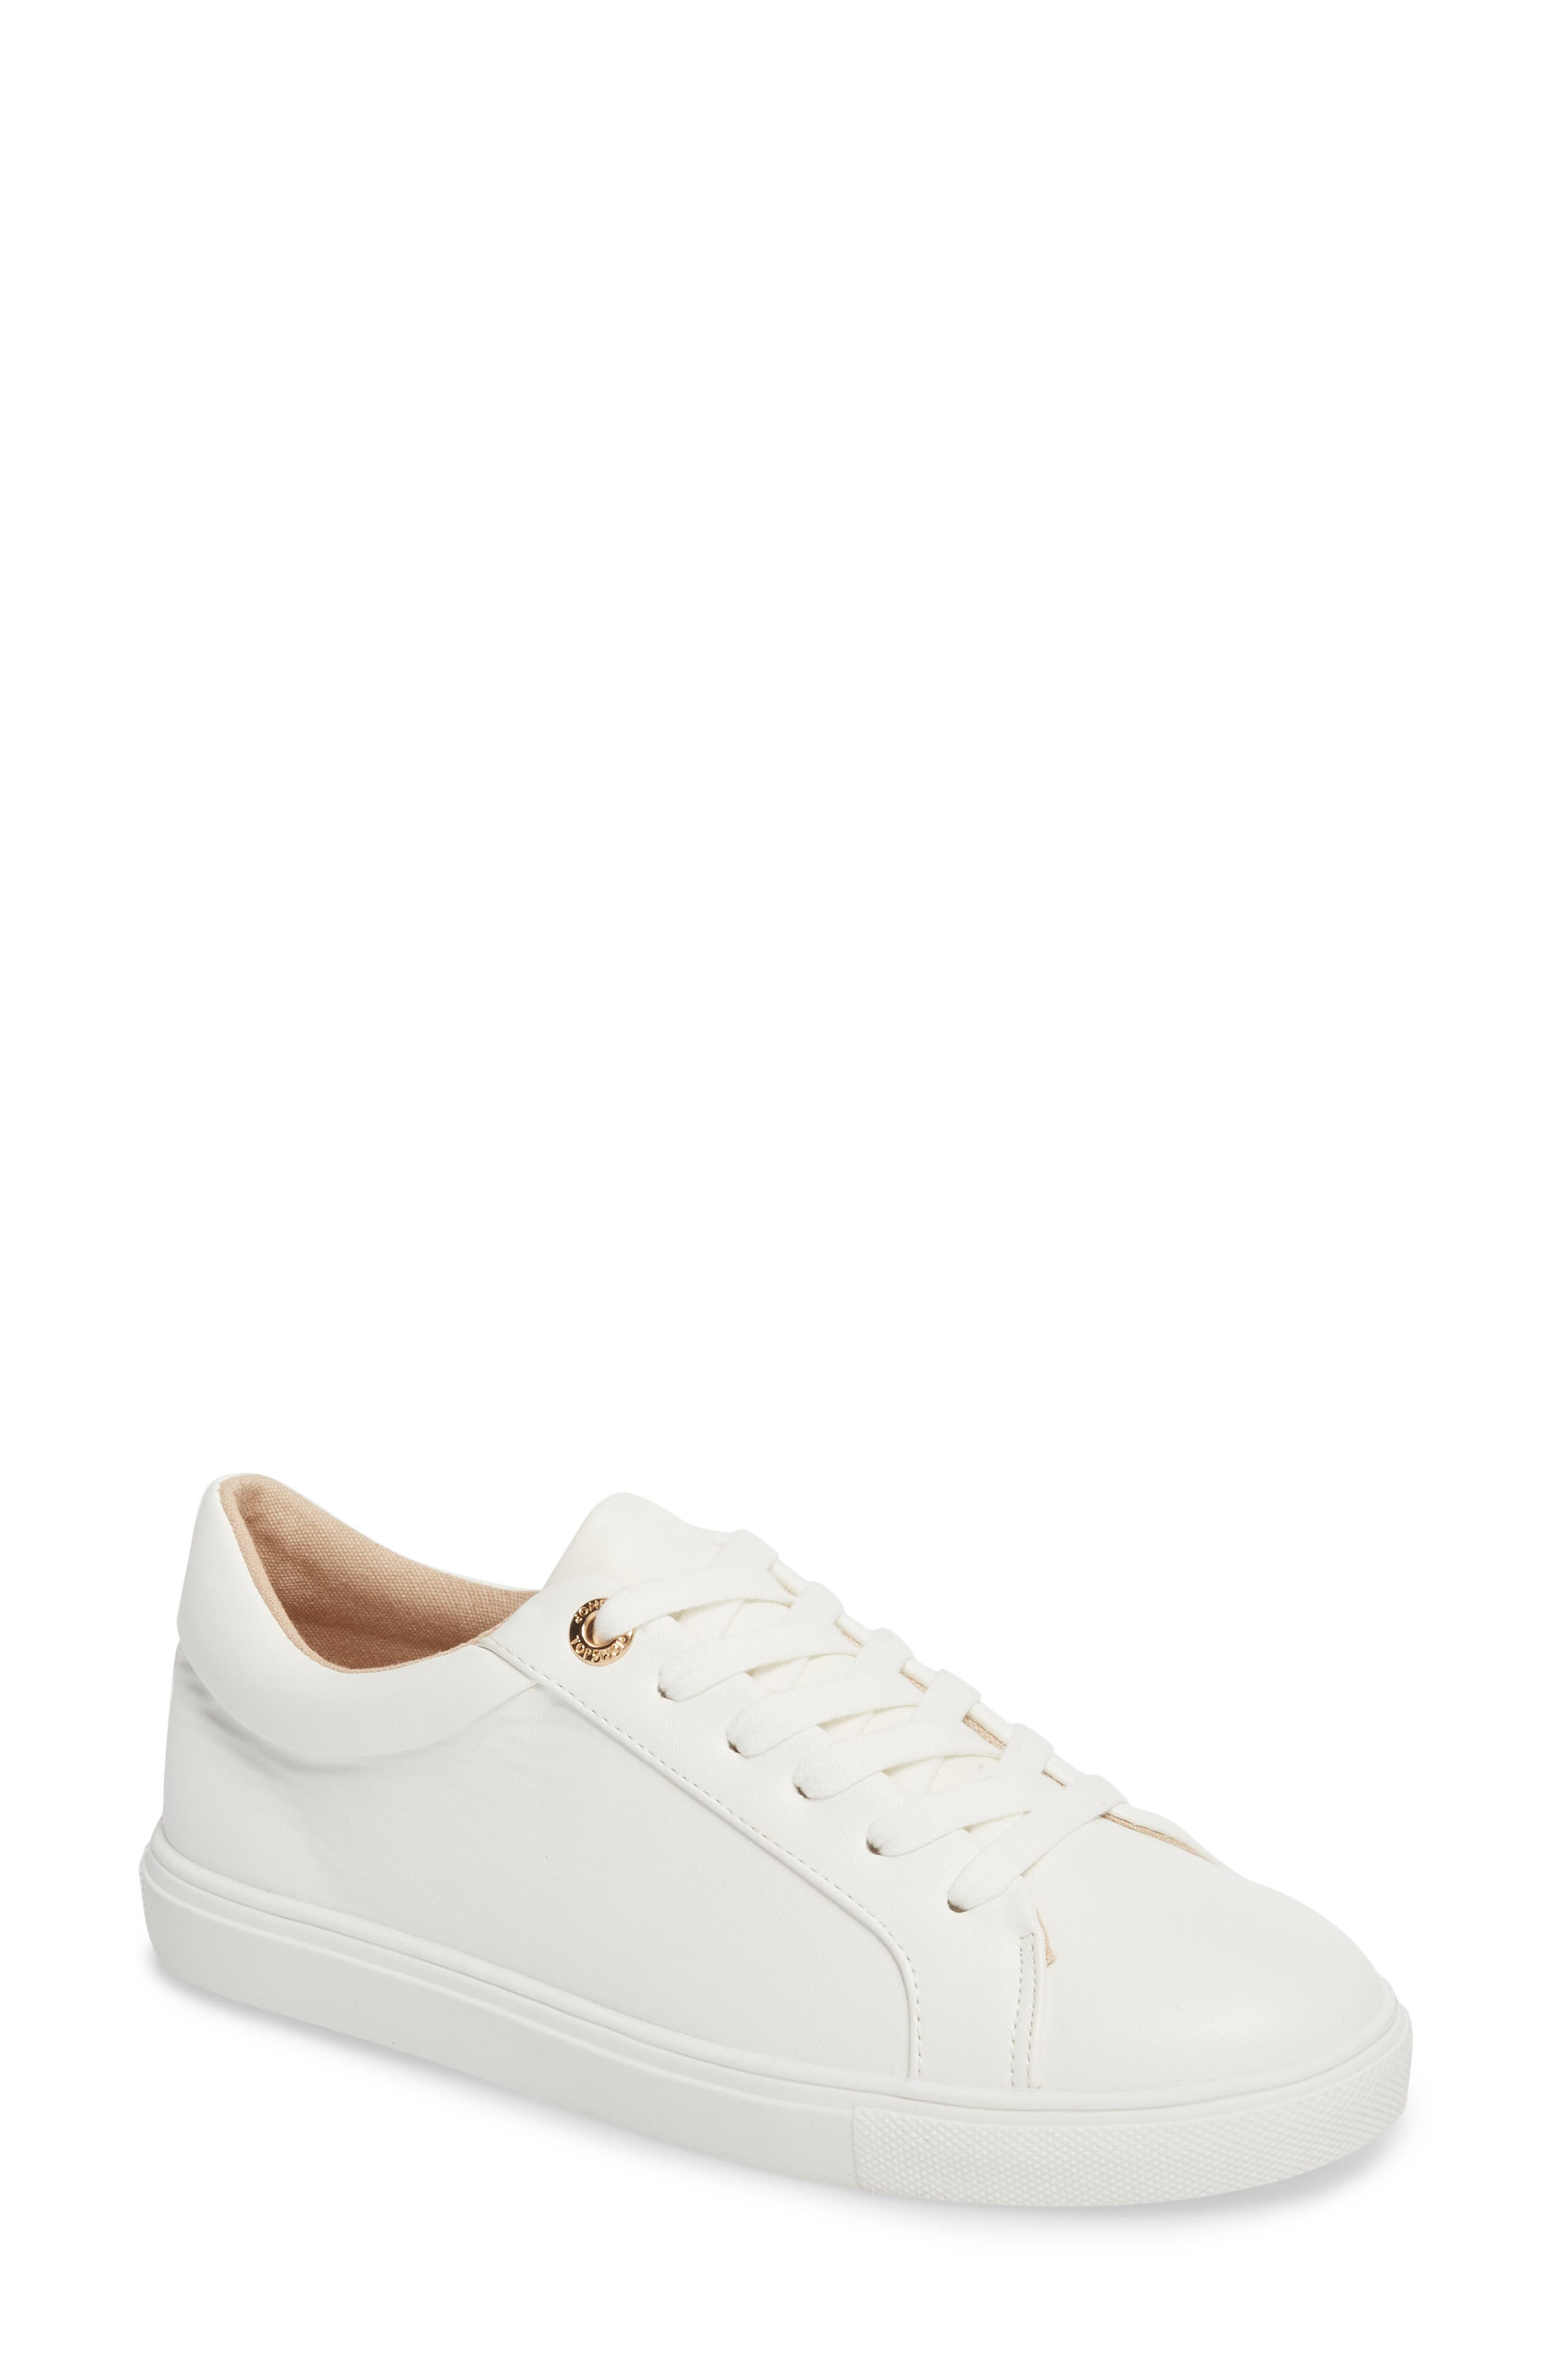 Cookie Low Top Sneaker,                         Main,                         color, White